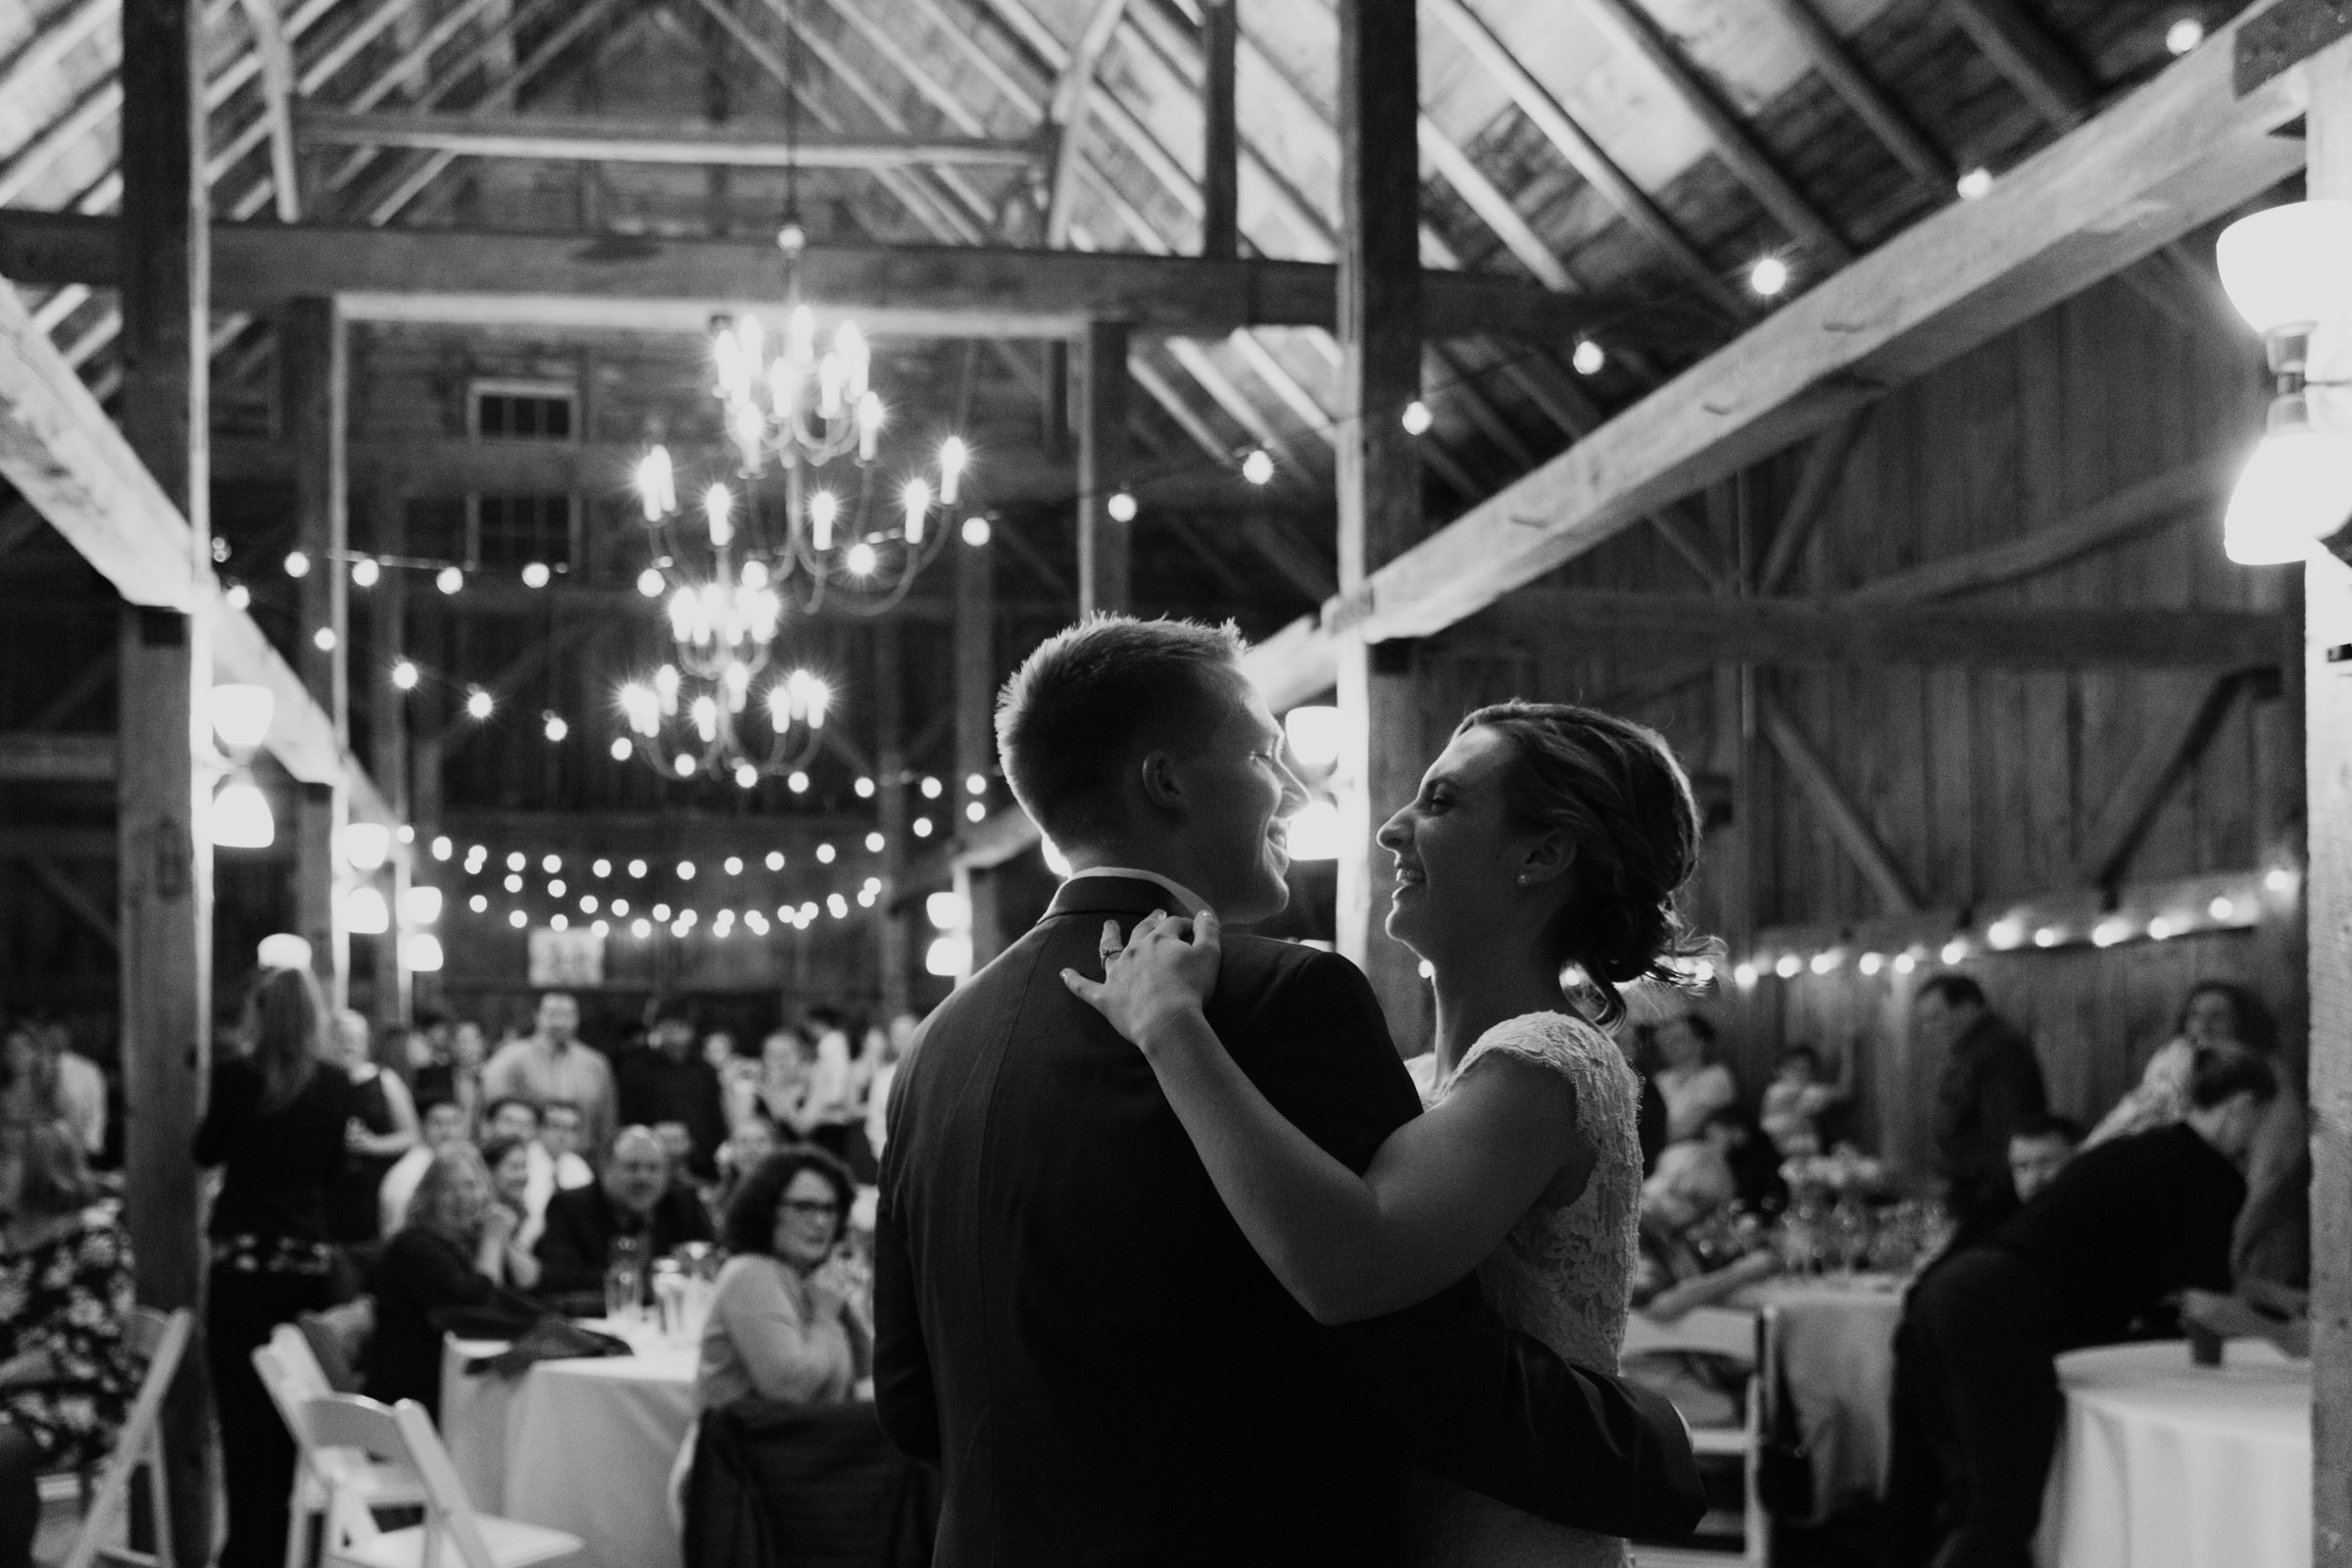 Ed and Jennifer dancing in the Barn at Walnut Hill